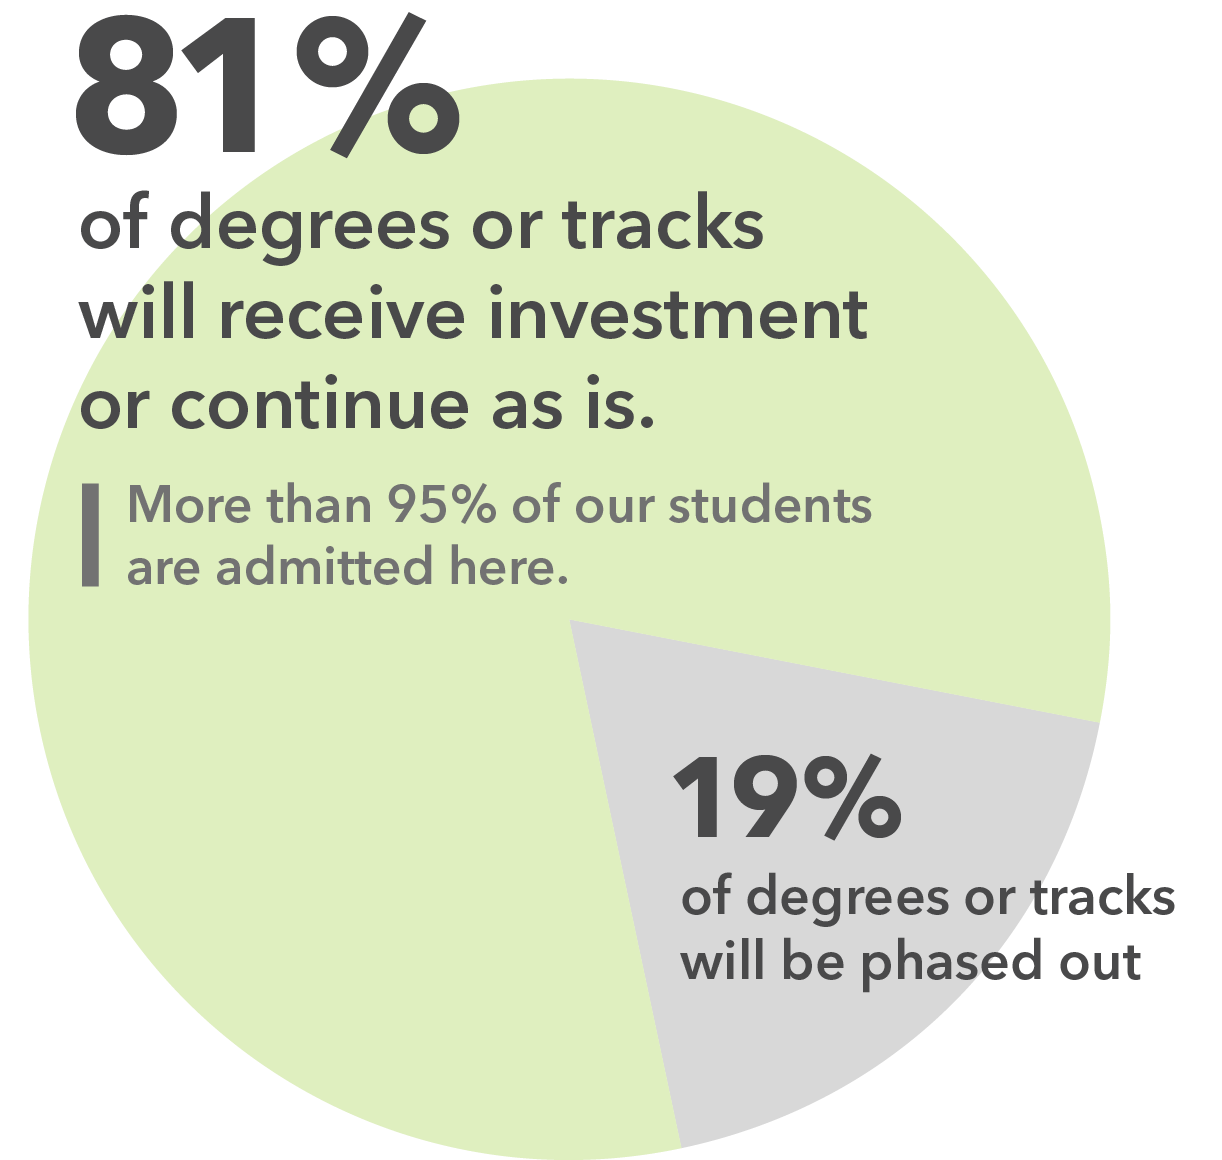 Pie chart showing that 81 percent of UA's degrees or tracks will continue or receive increased investment